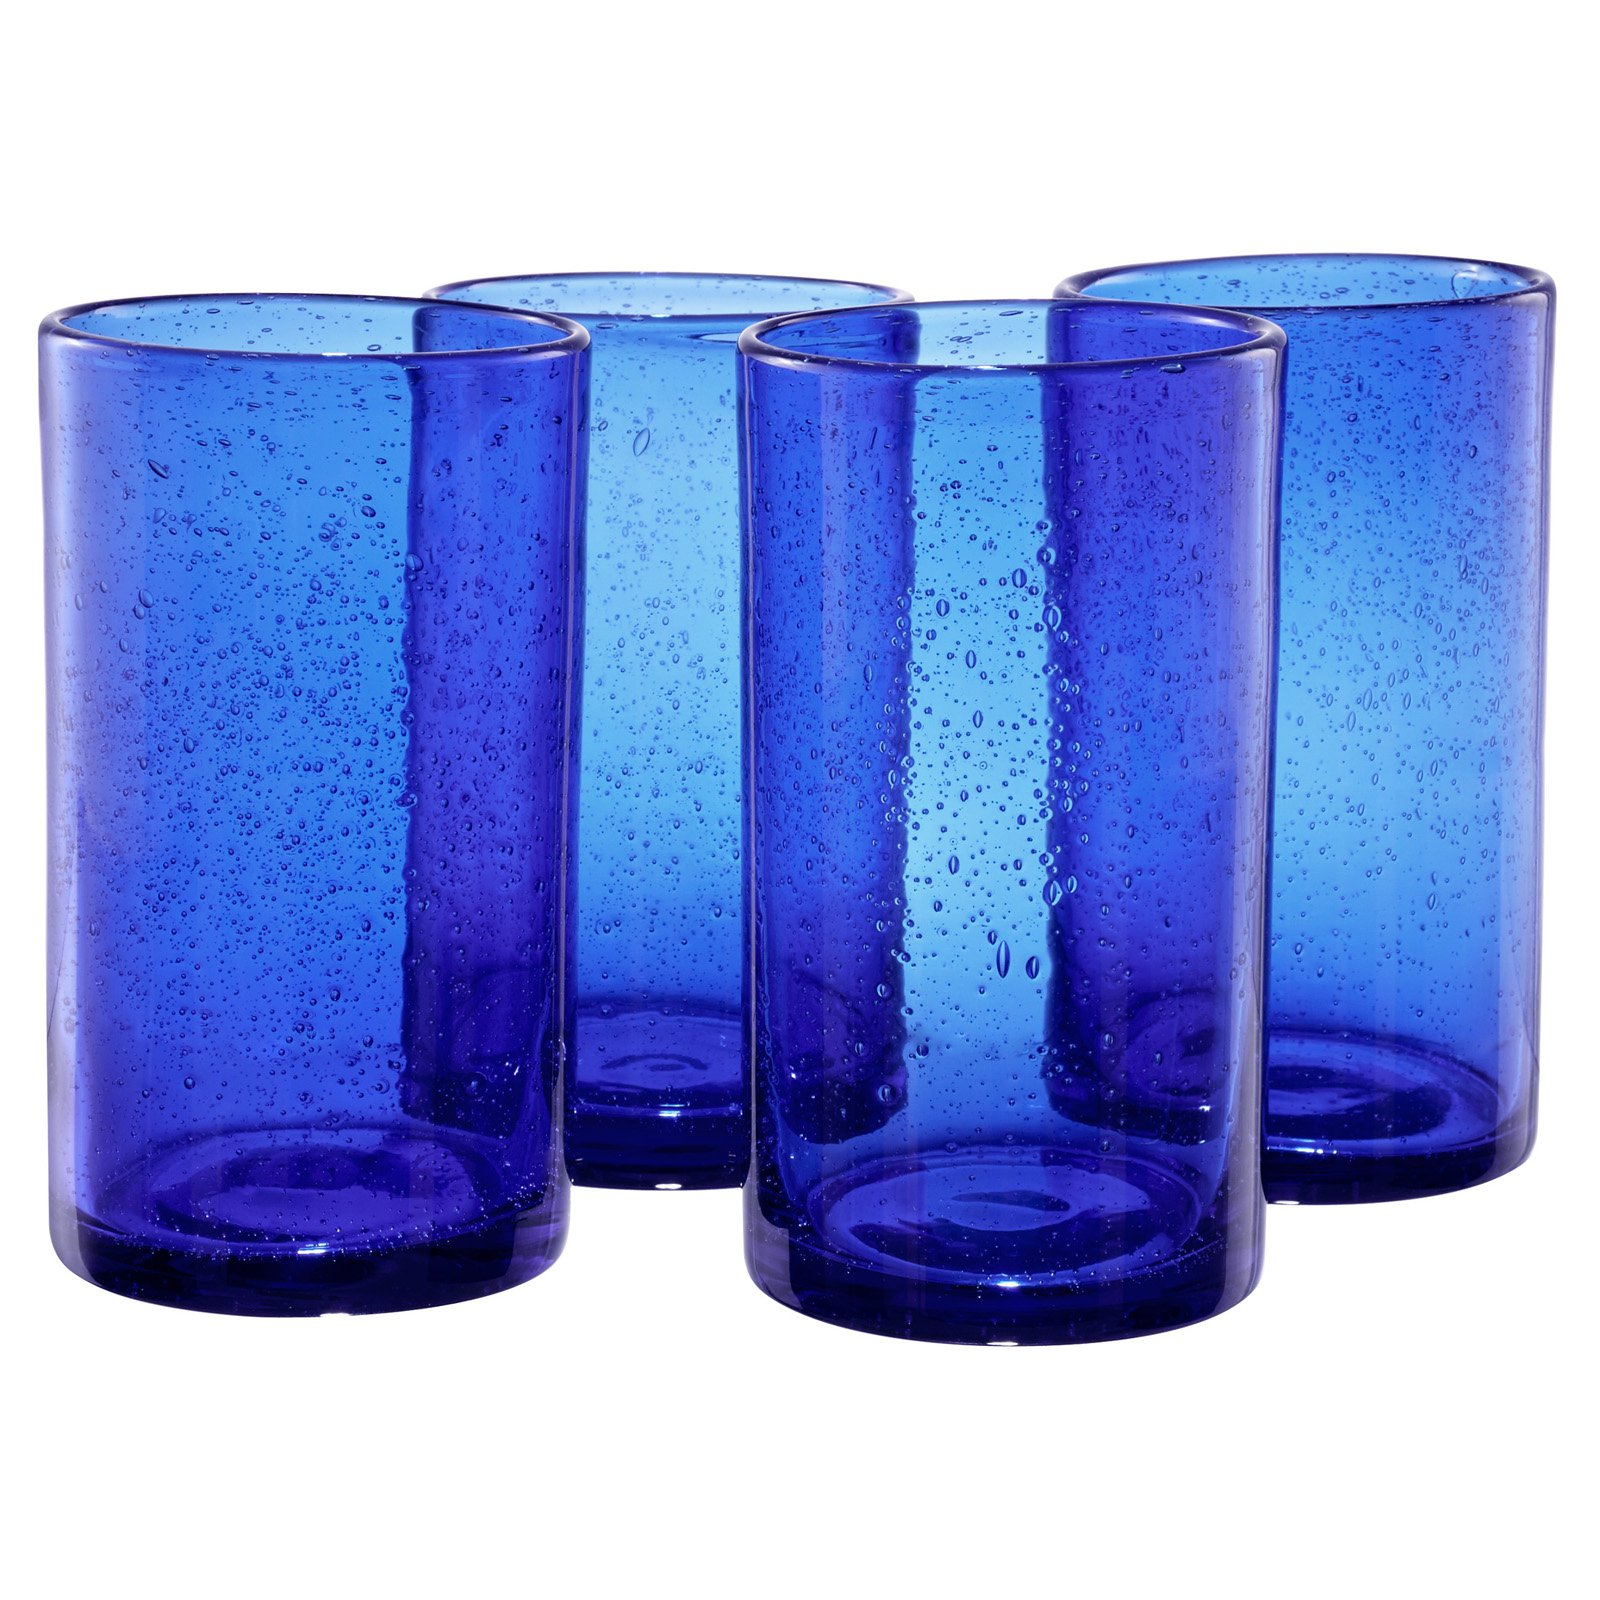 Artland Inc. Iris HiBall Glasses - Set of 4